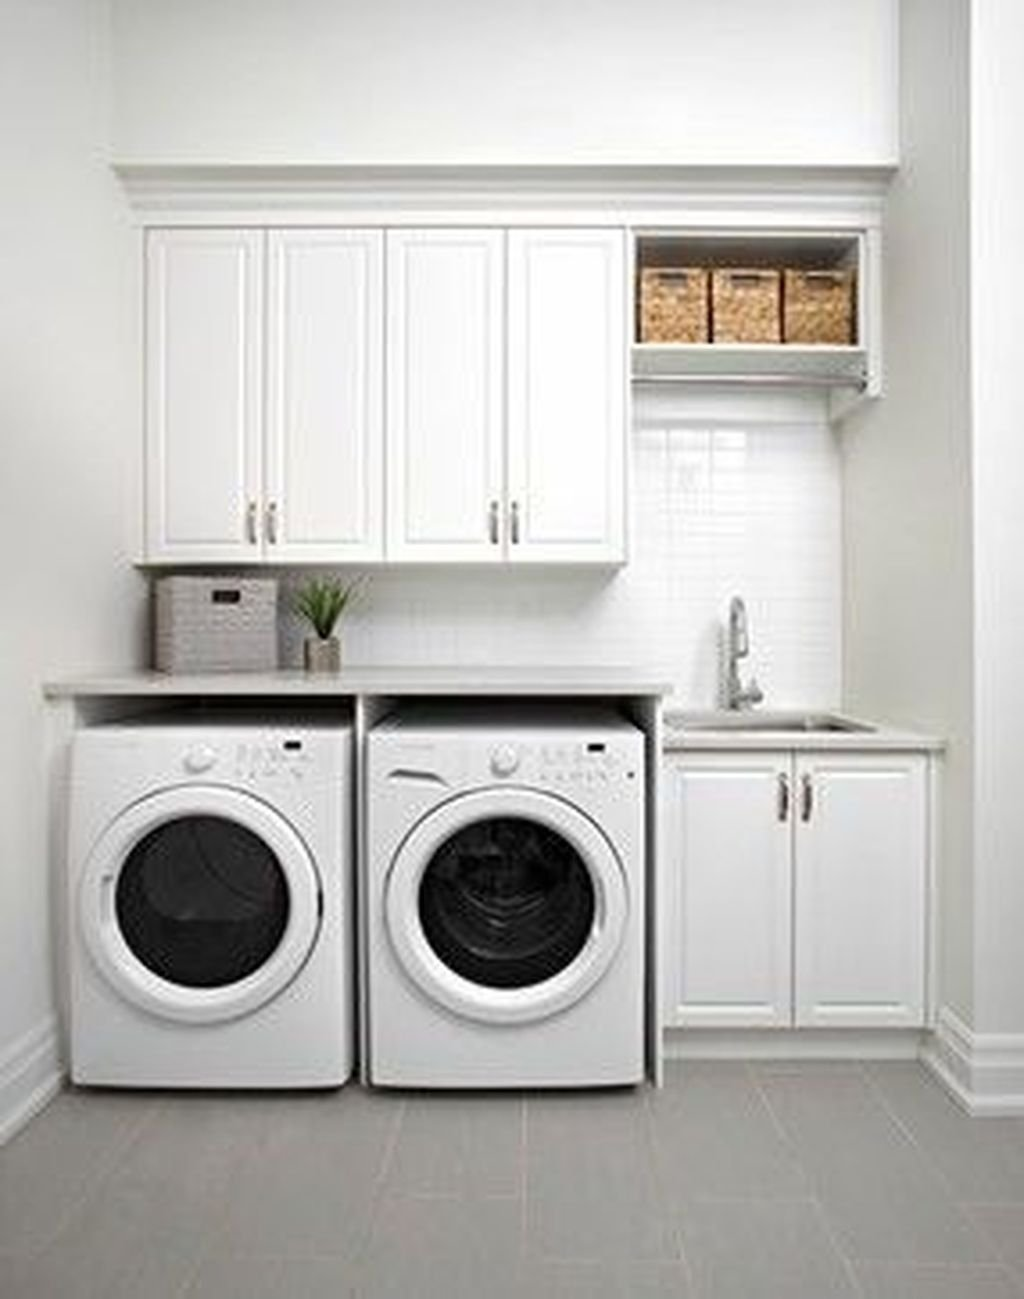 Inspiring Small Laundry Room Design And Decor Ideas 22